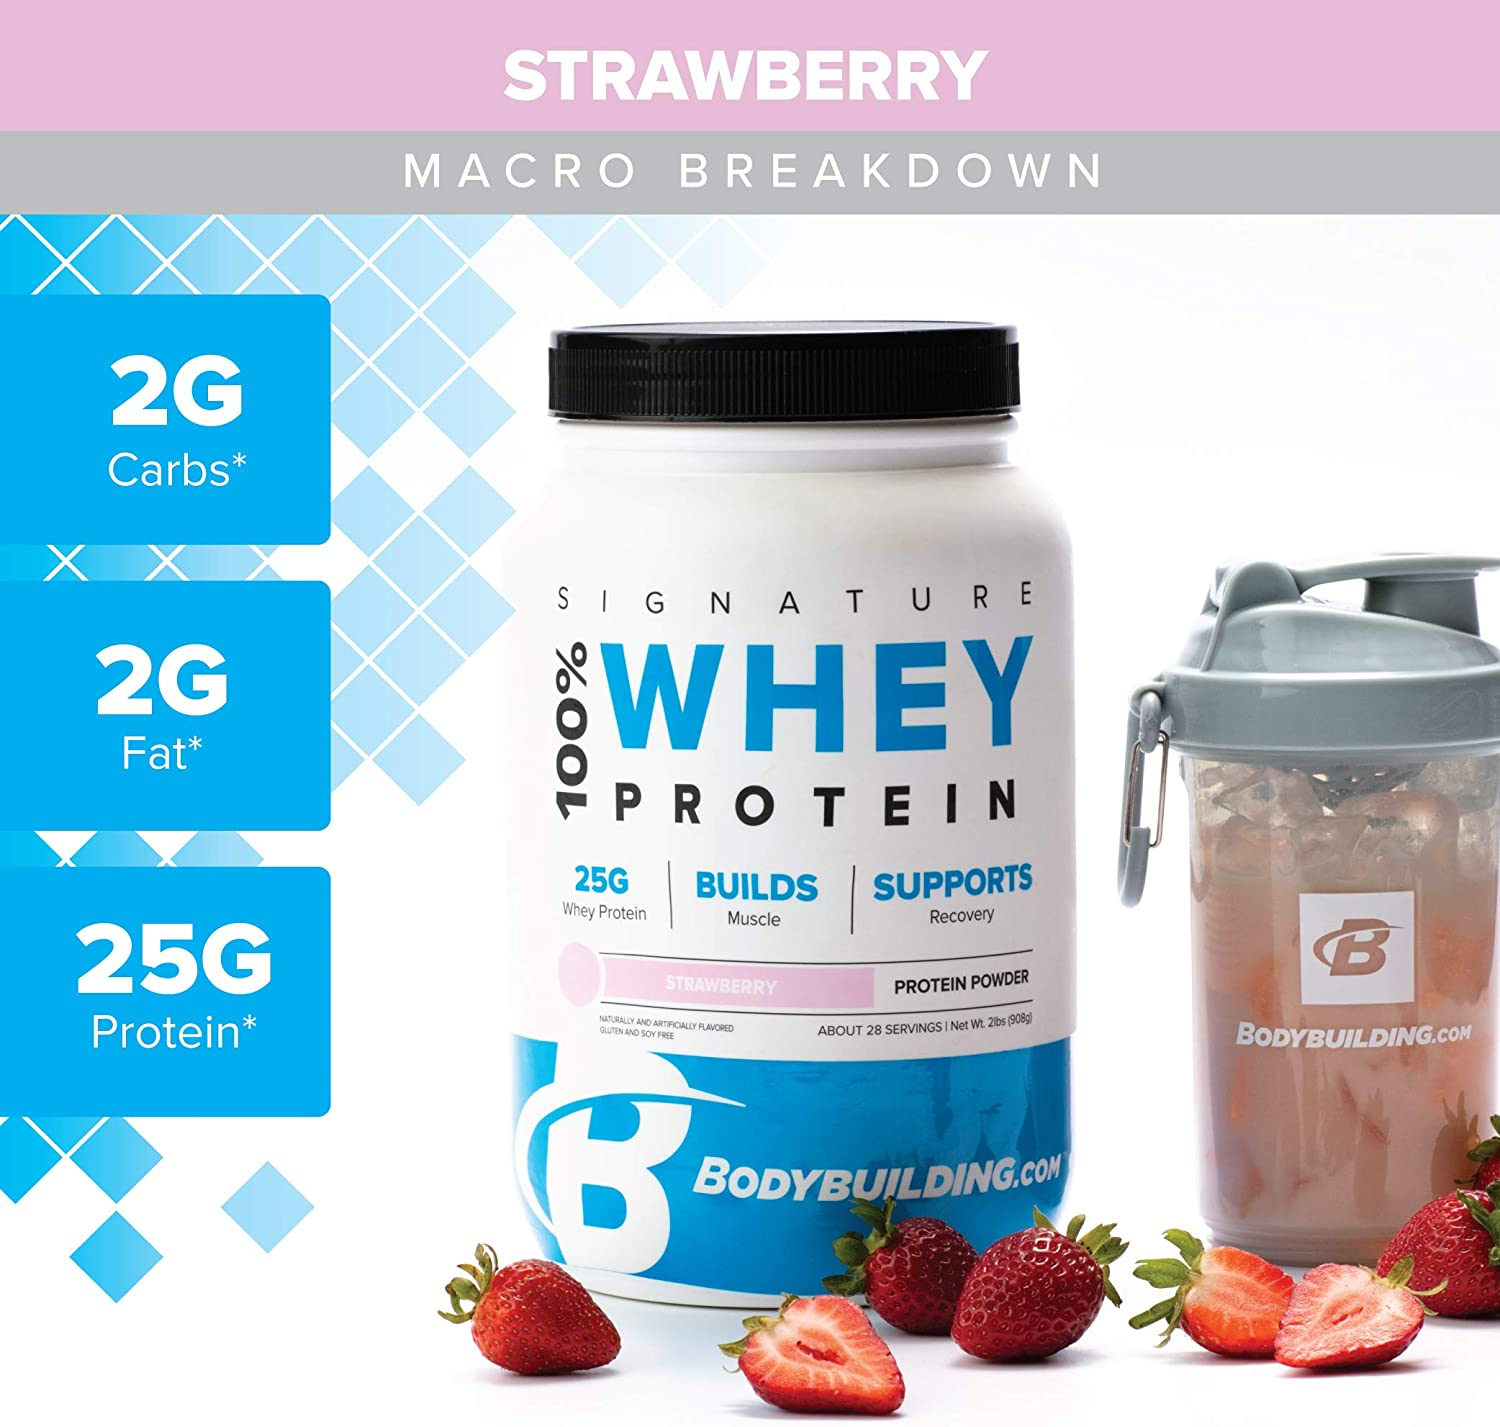 Bodybuilding Signature 100 Whey Protein Powder Strawberry 25g of Protein per Serving 5 lbs